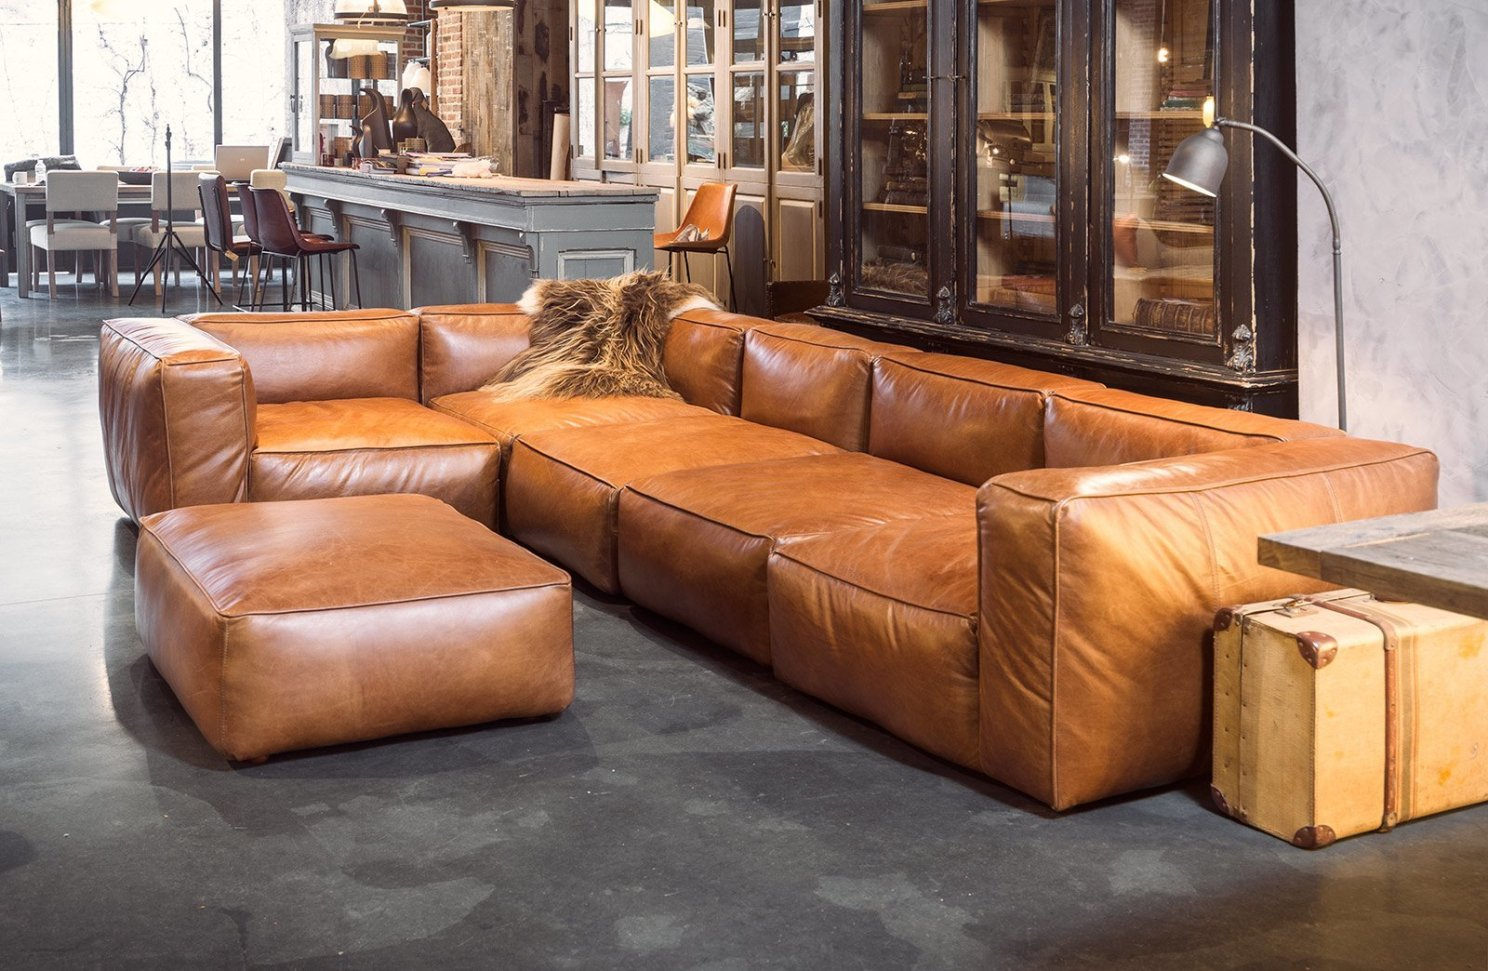 Cognac leather sofas are now on trend for 2017 homes